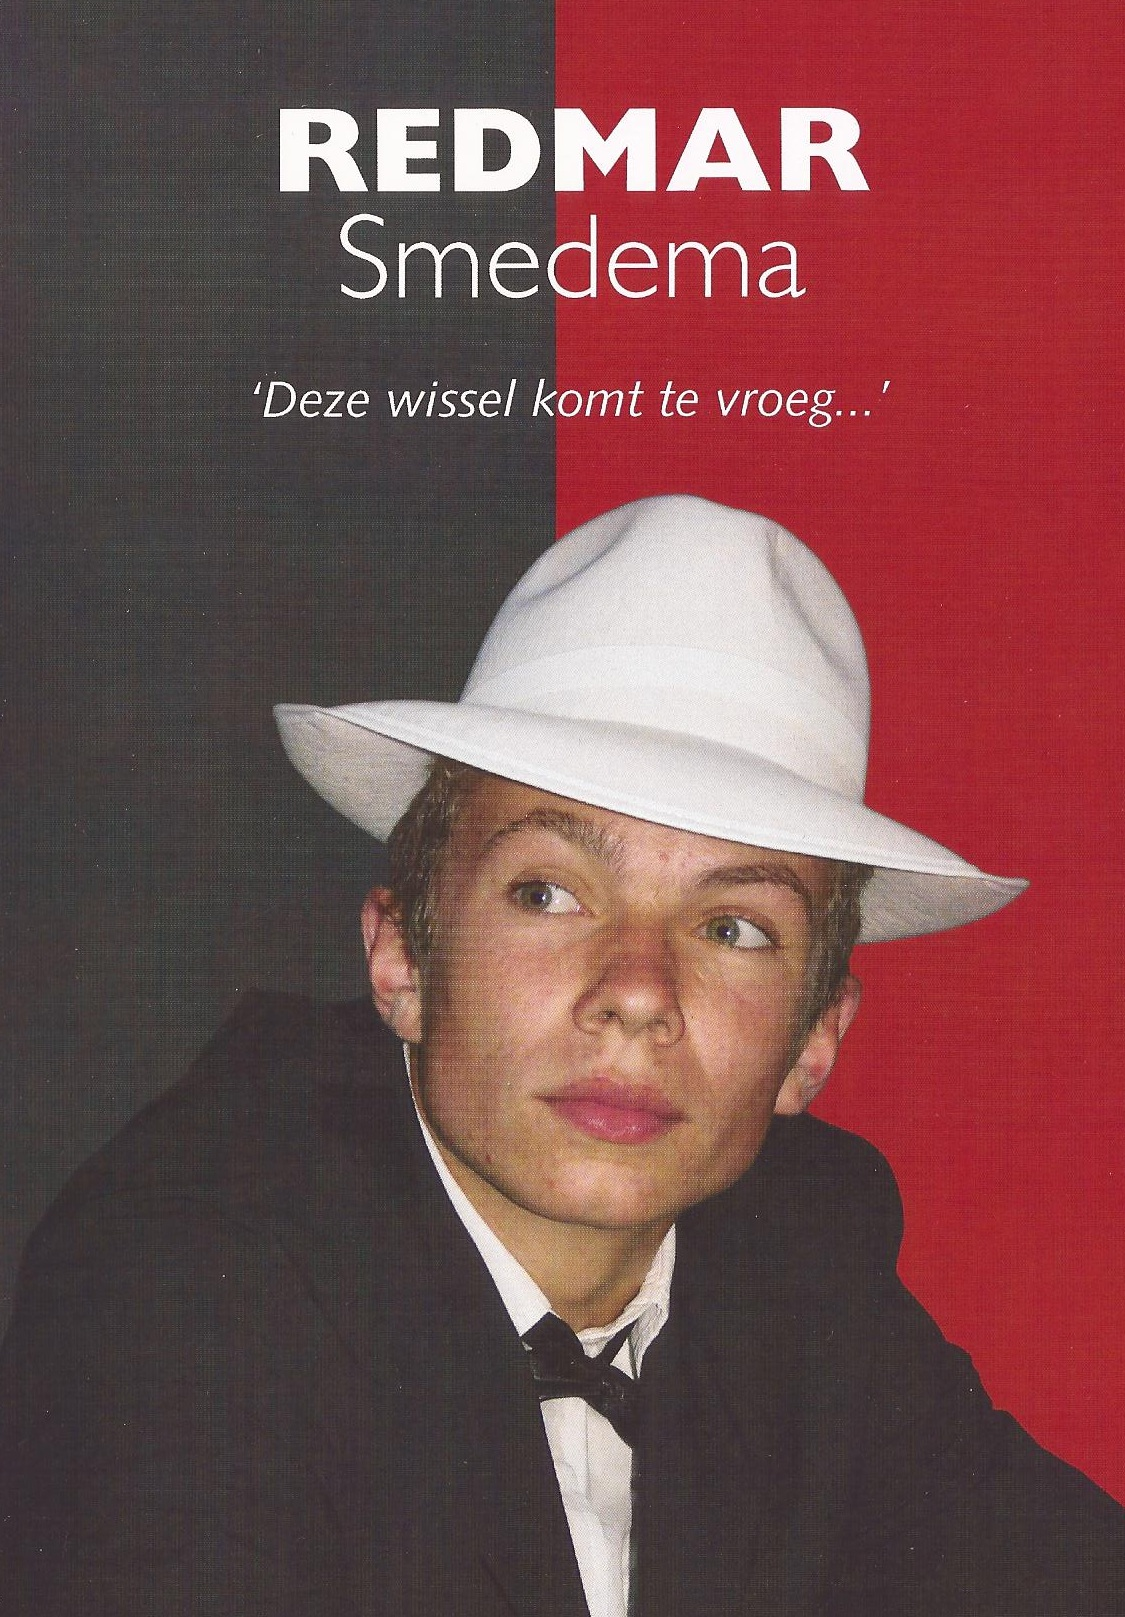 Boek over Redmar Smedema